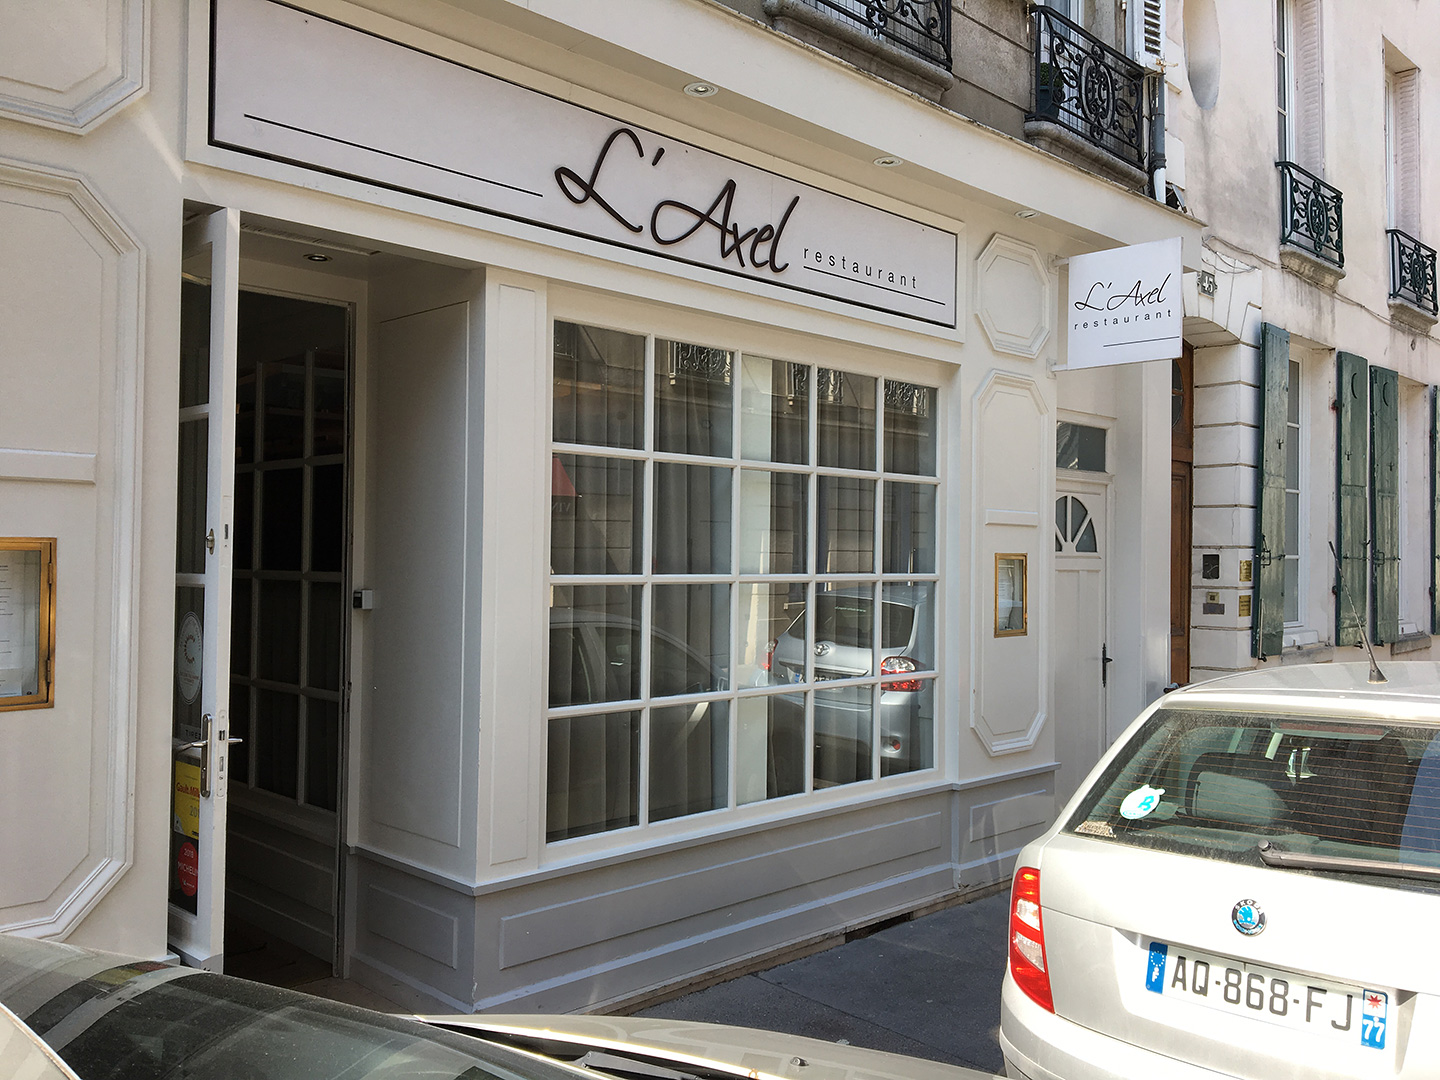 L'Axel Restaurant's street frontage